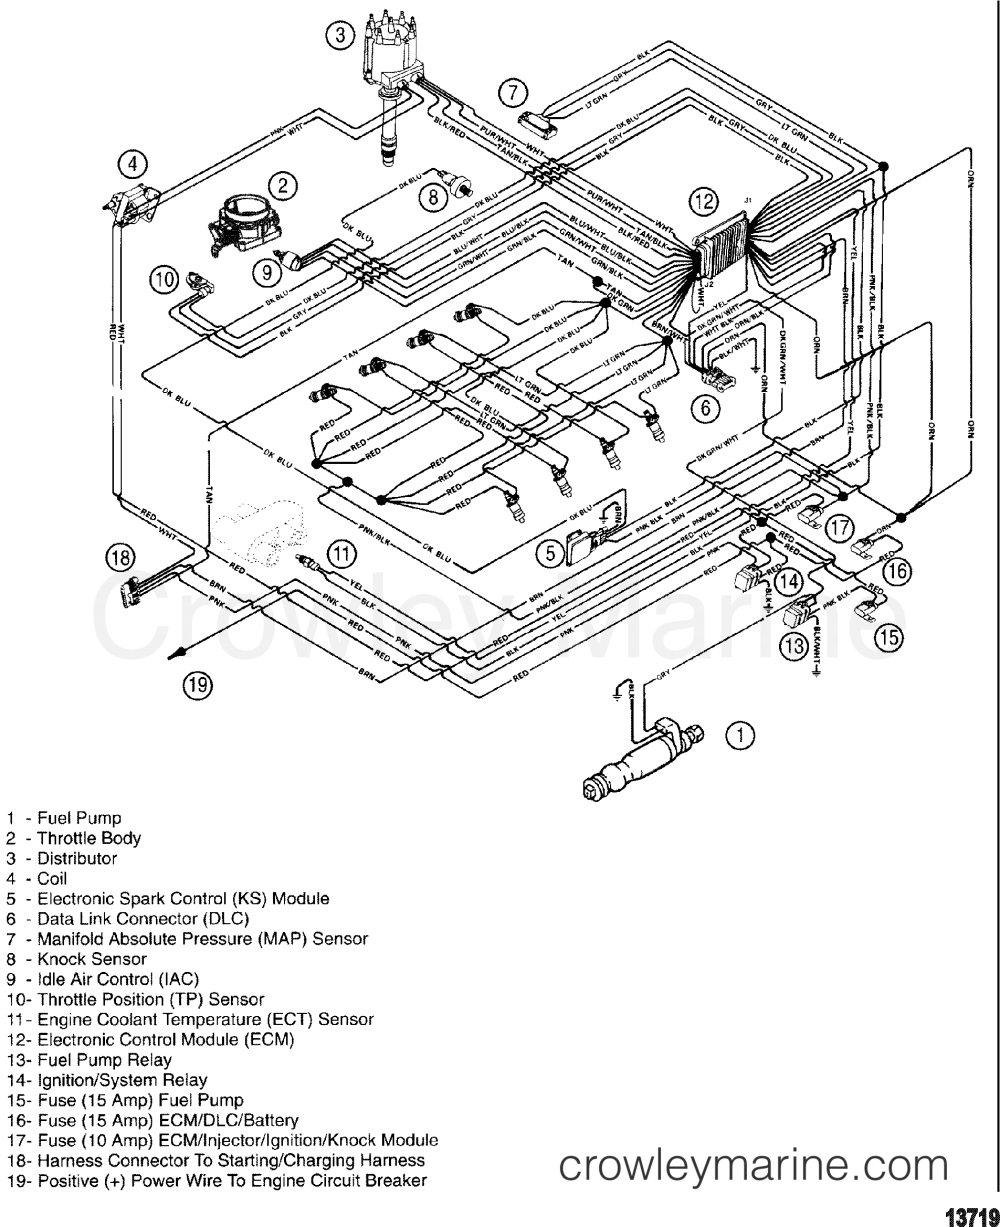 medium resolution of 1998 f250 engine wiring harness